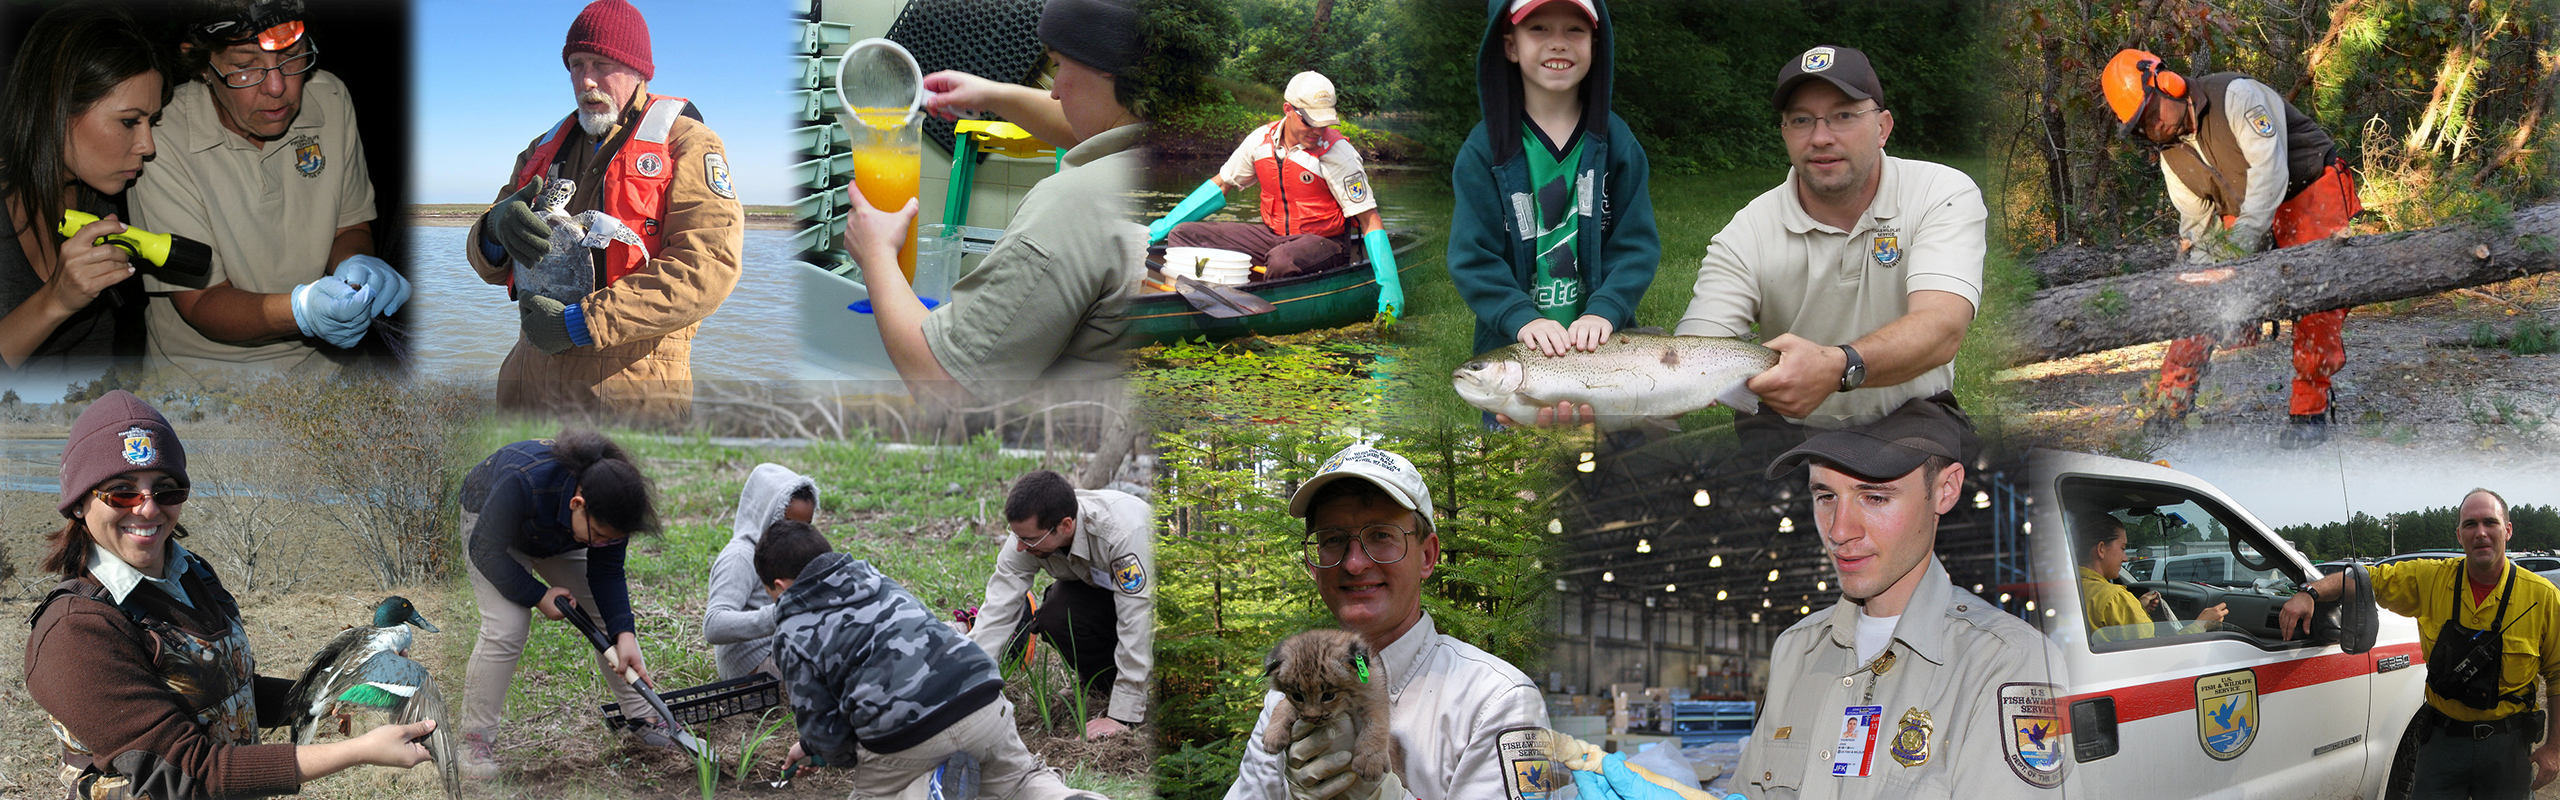 U.S. Fish and Wildlife Service Northeast Region